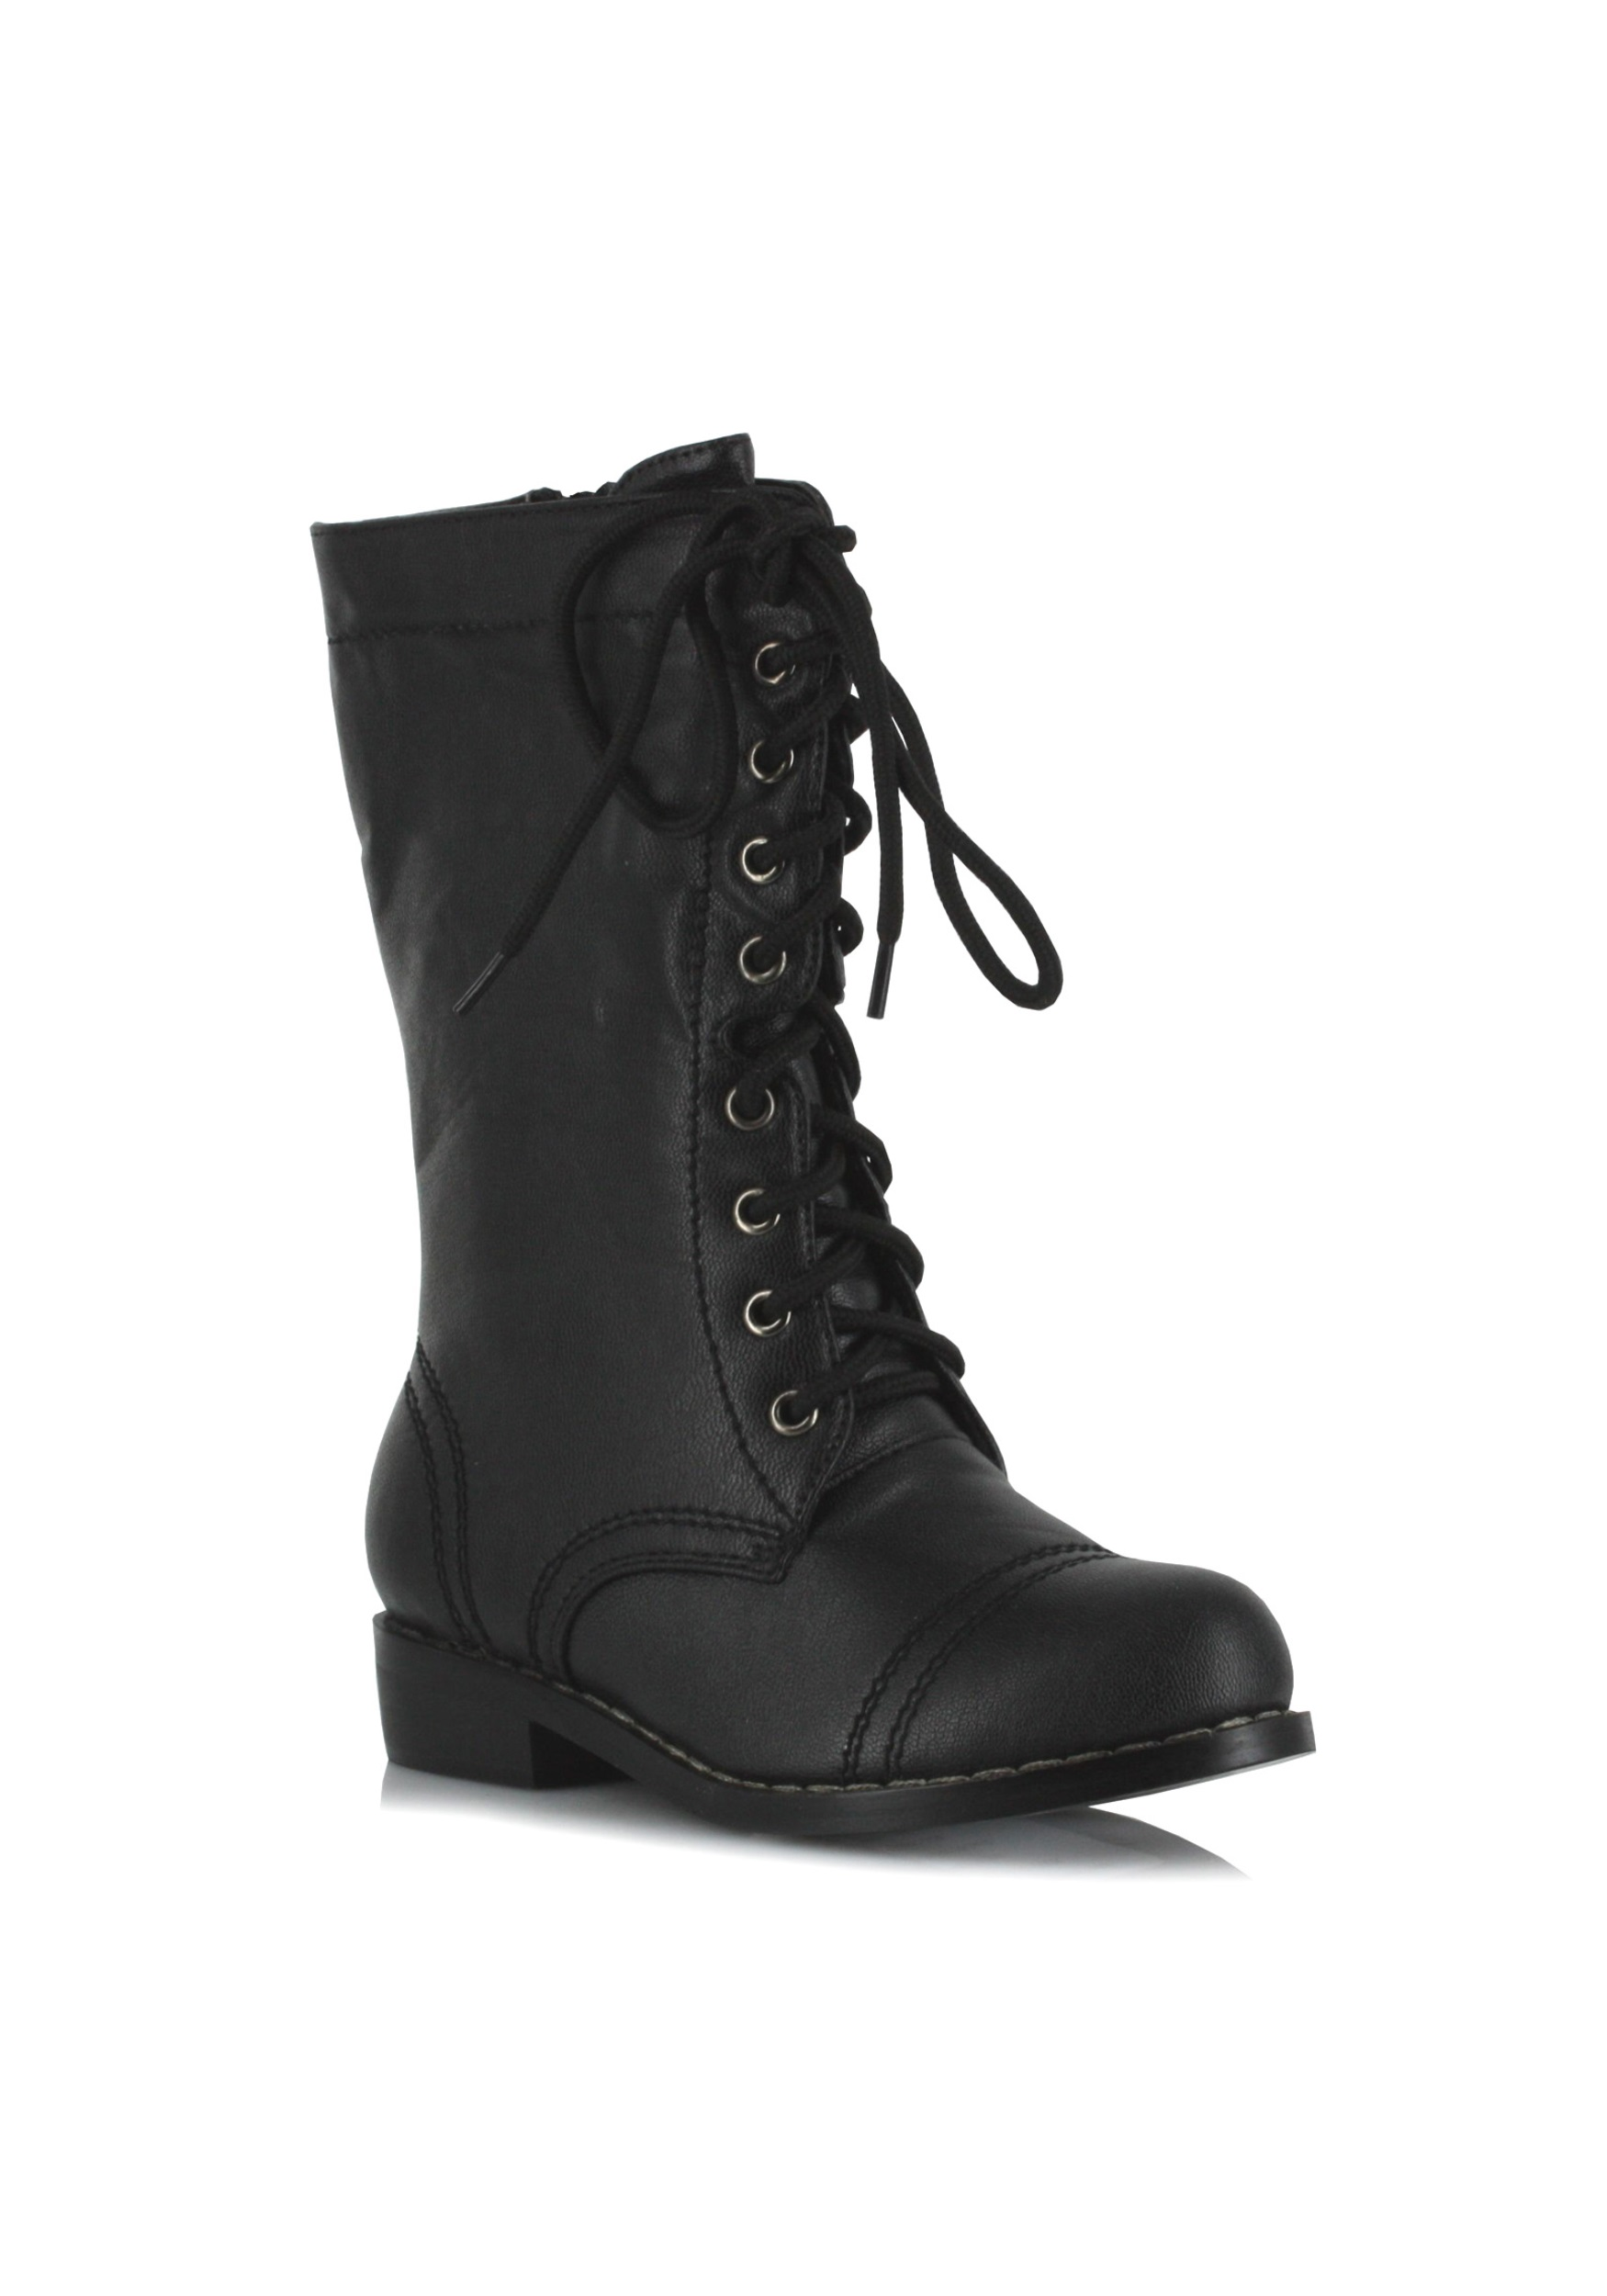 Shop for black boots online at Target. Free shipping on purchases over $35 and save 5% every day with your Target REDcard.